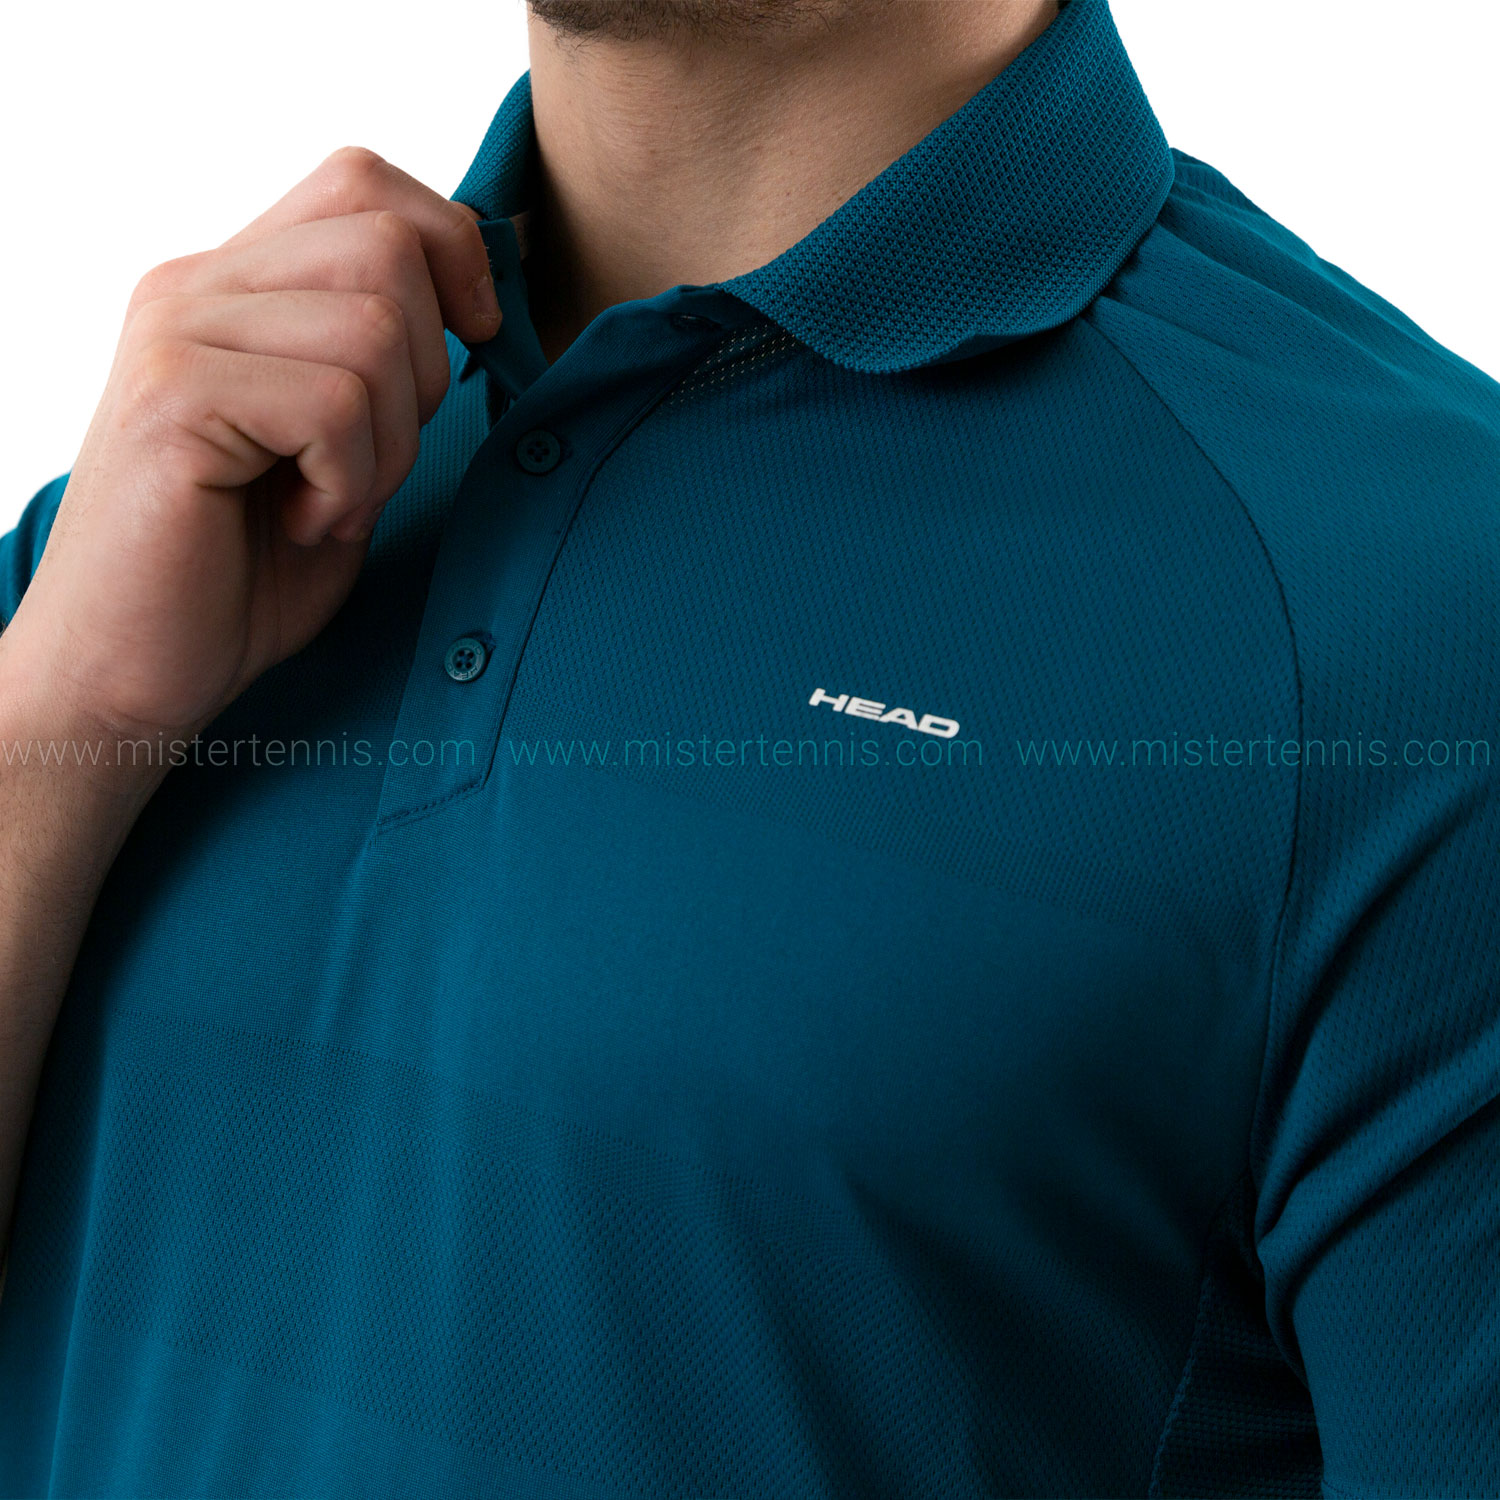 Head Performance Polo - Lagoon